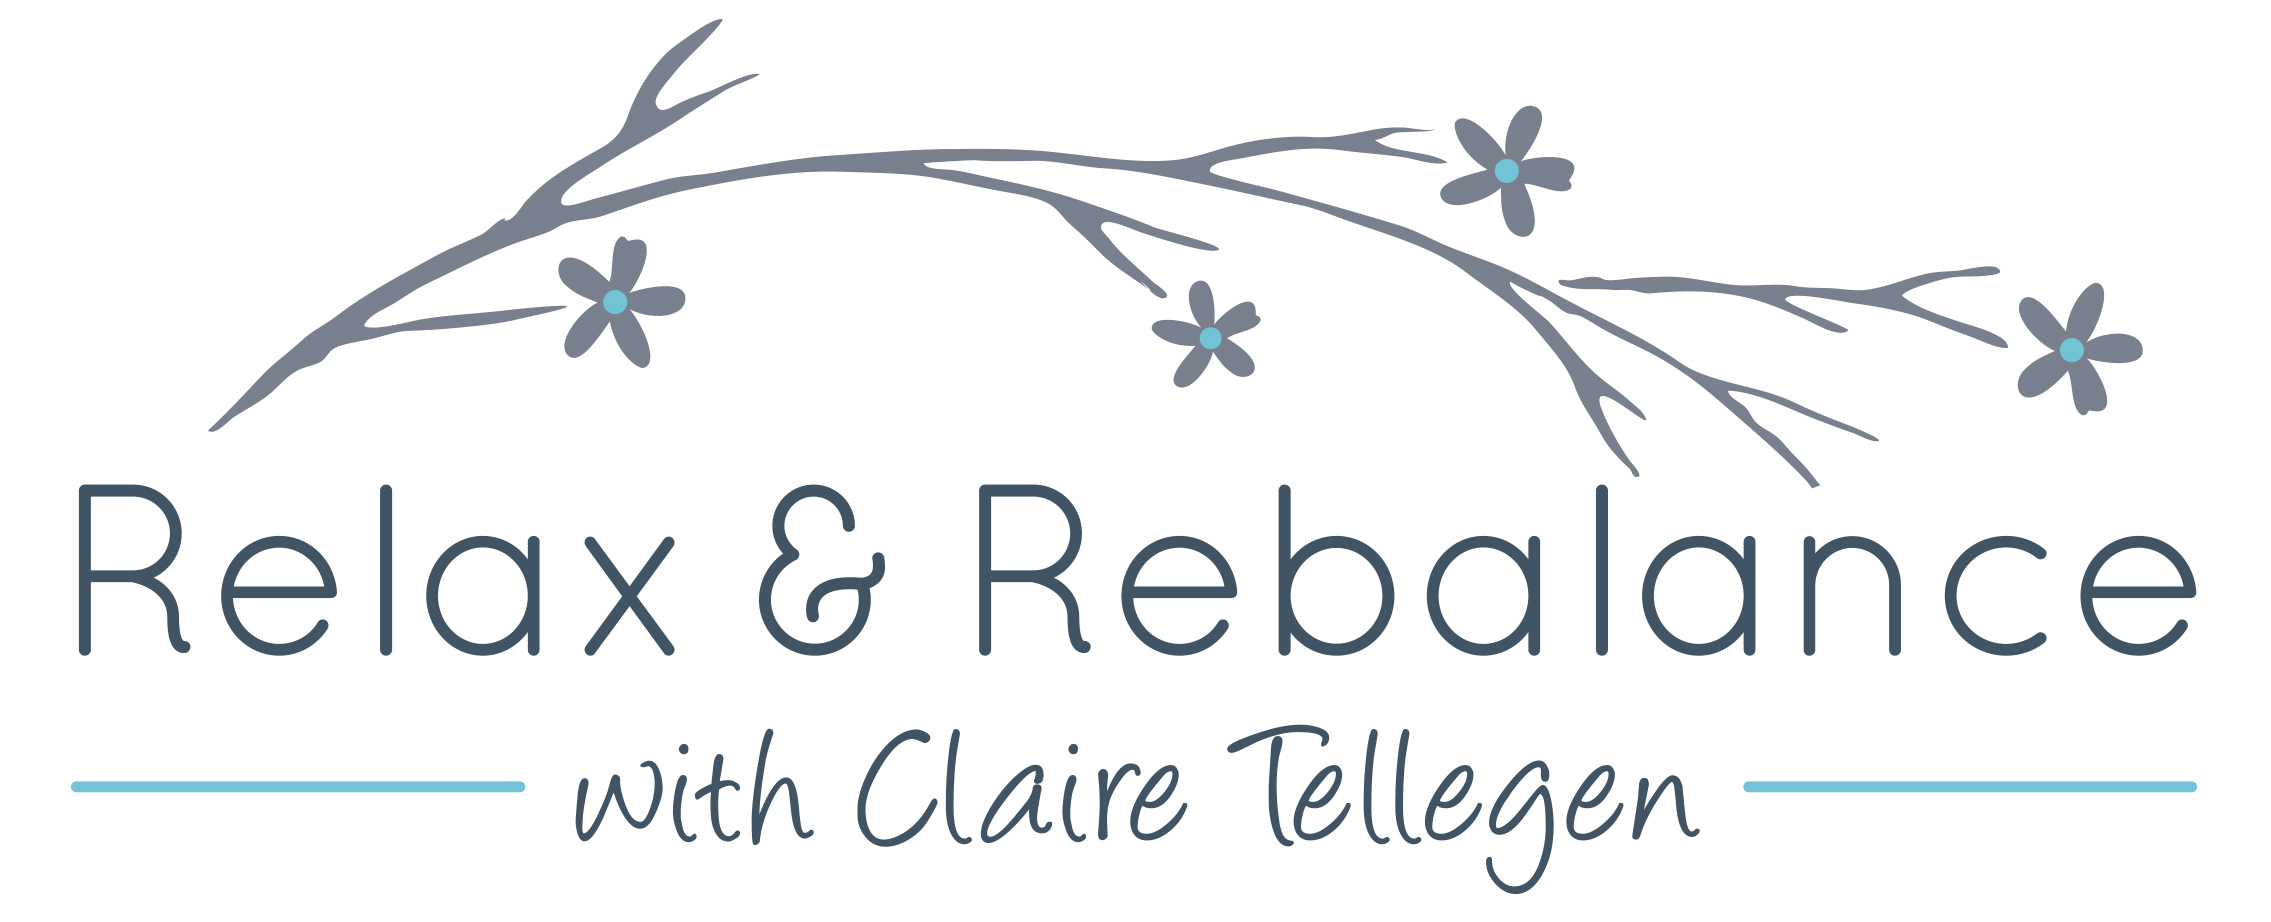 Relax and Rebalance Reflexology & Wellbeing